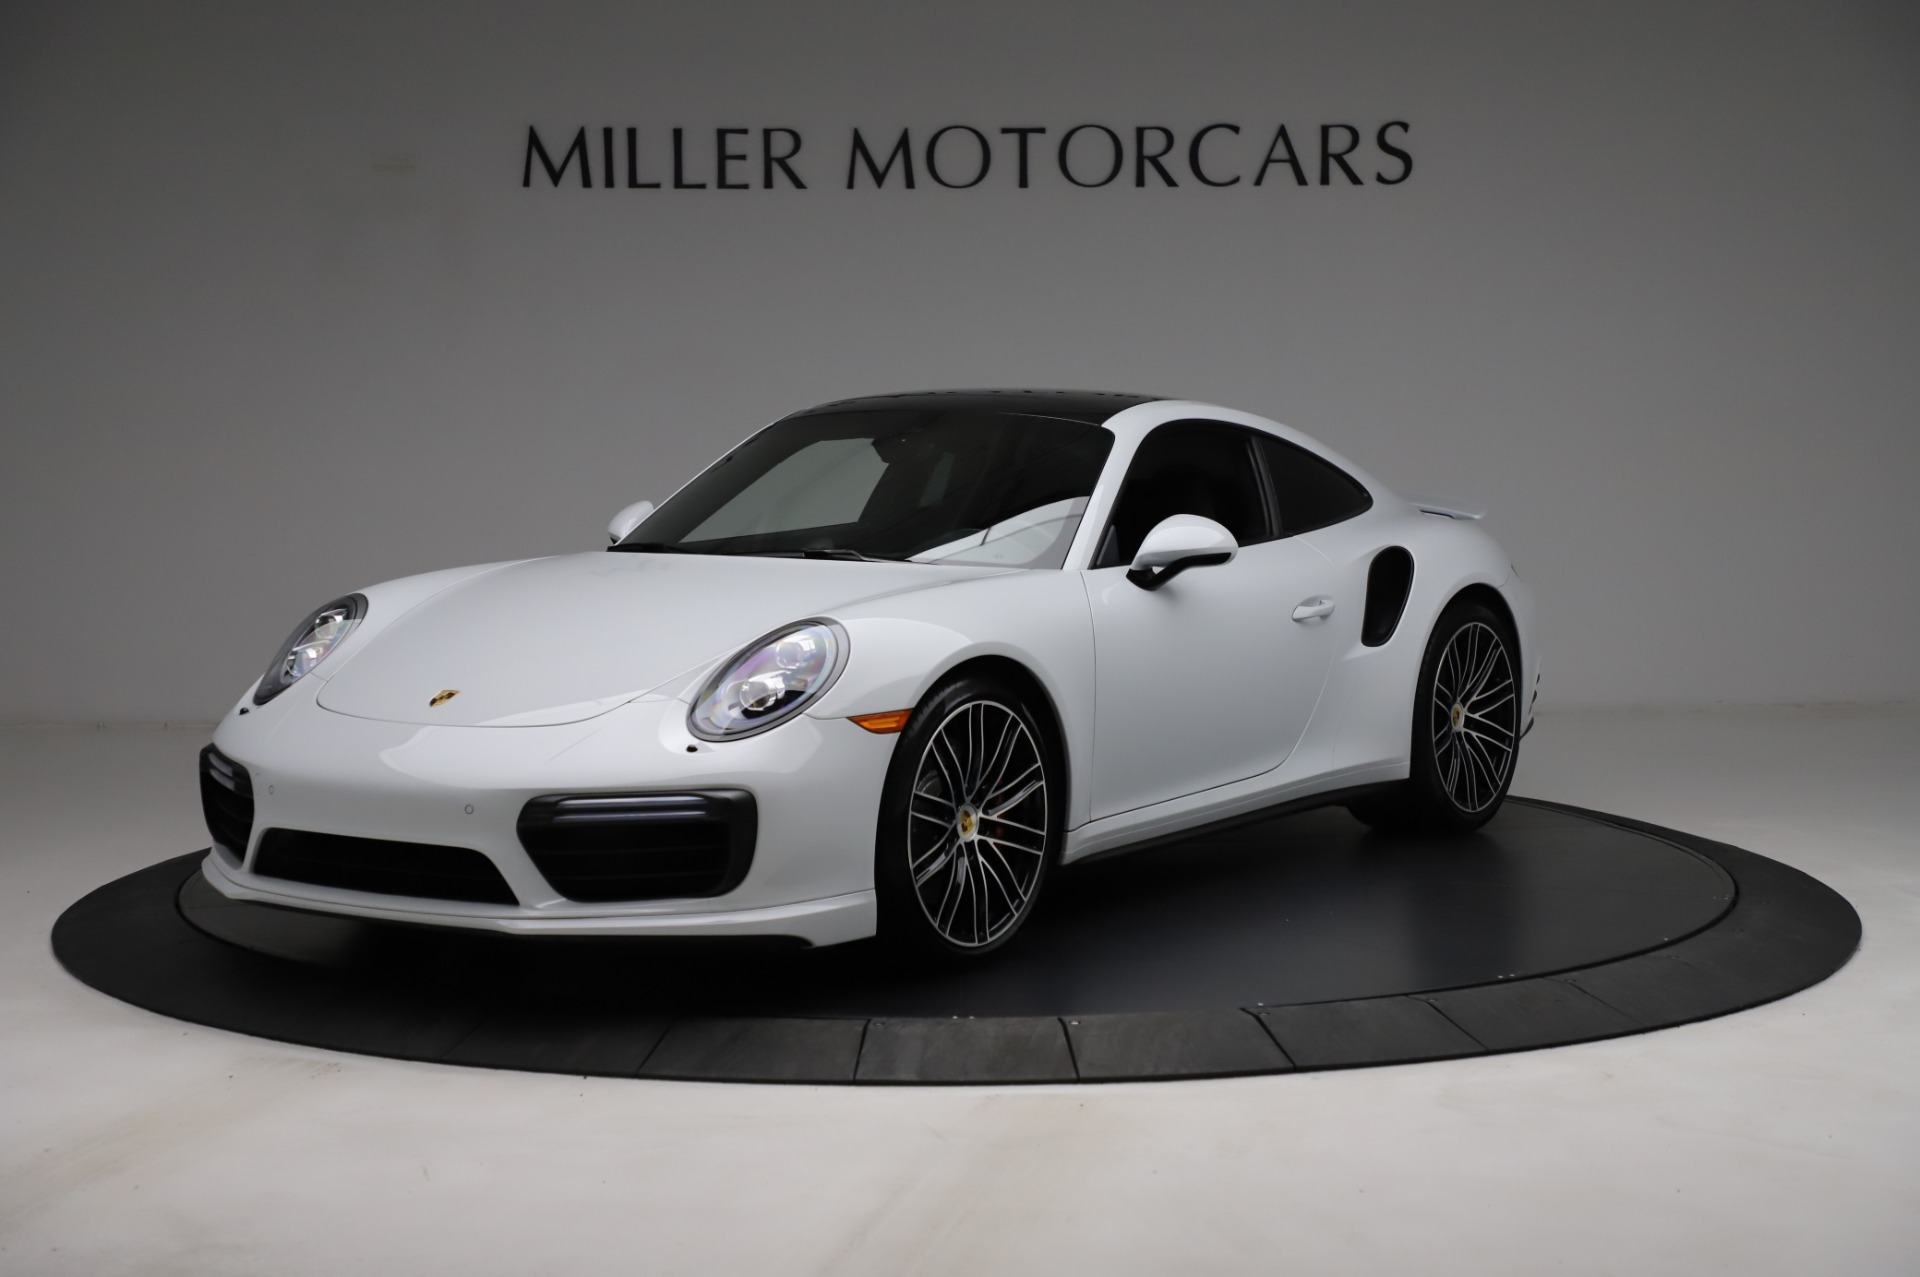 Used 2018 Porsche 911 Turbo for sale $159,990 at McLaren Greenwich in Greenwich CT 06830 1